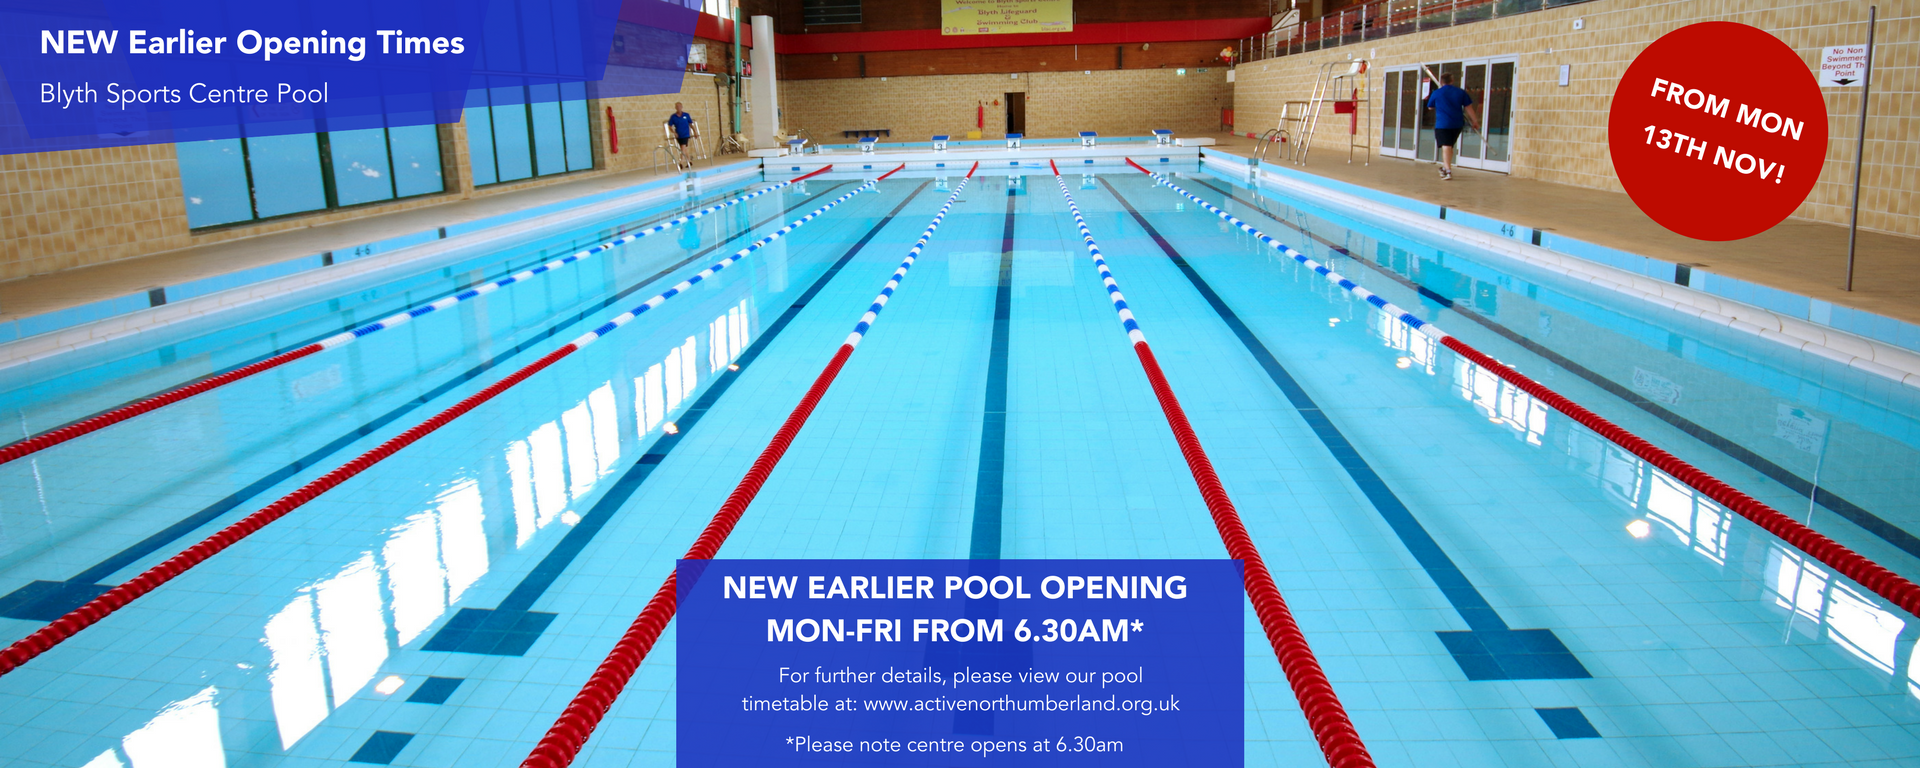 25 - New Earlier Pool Opening